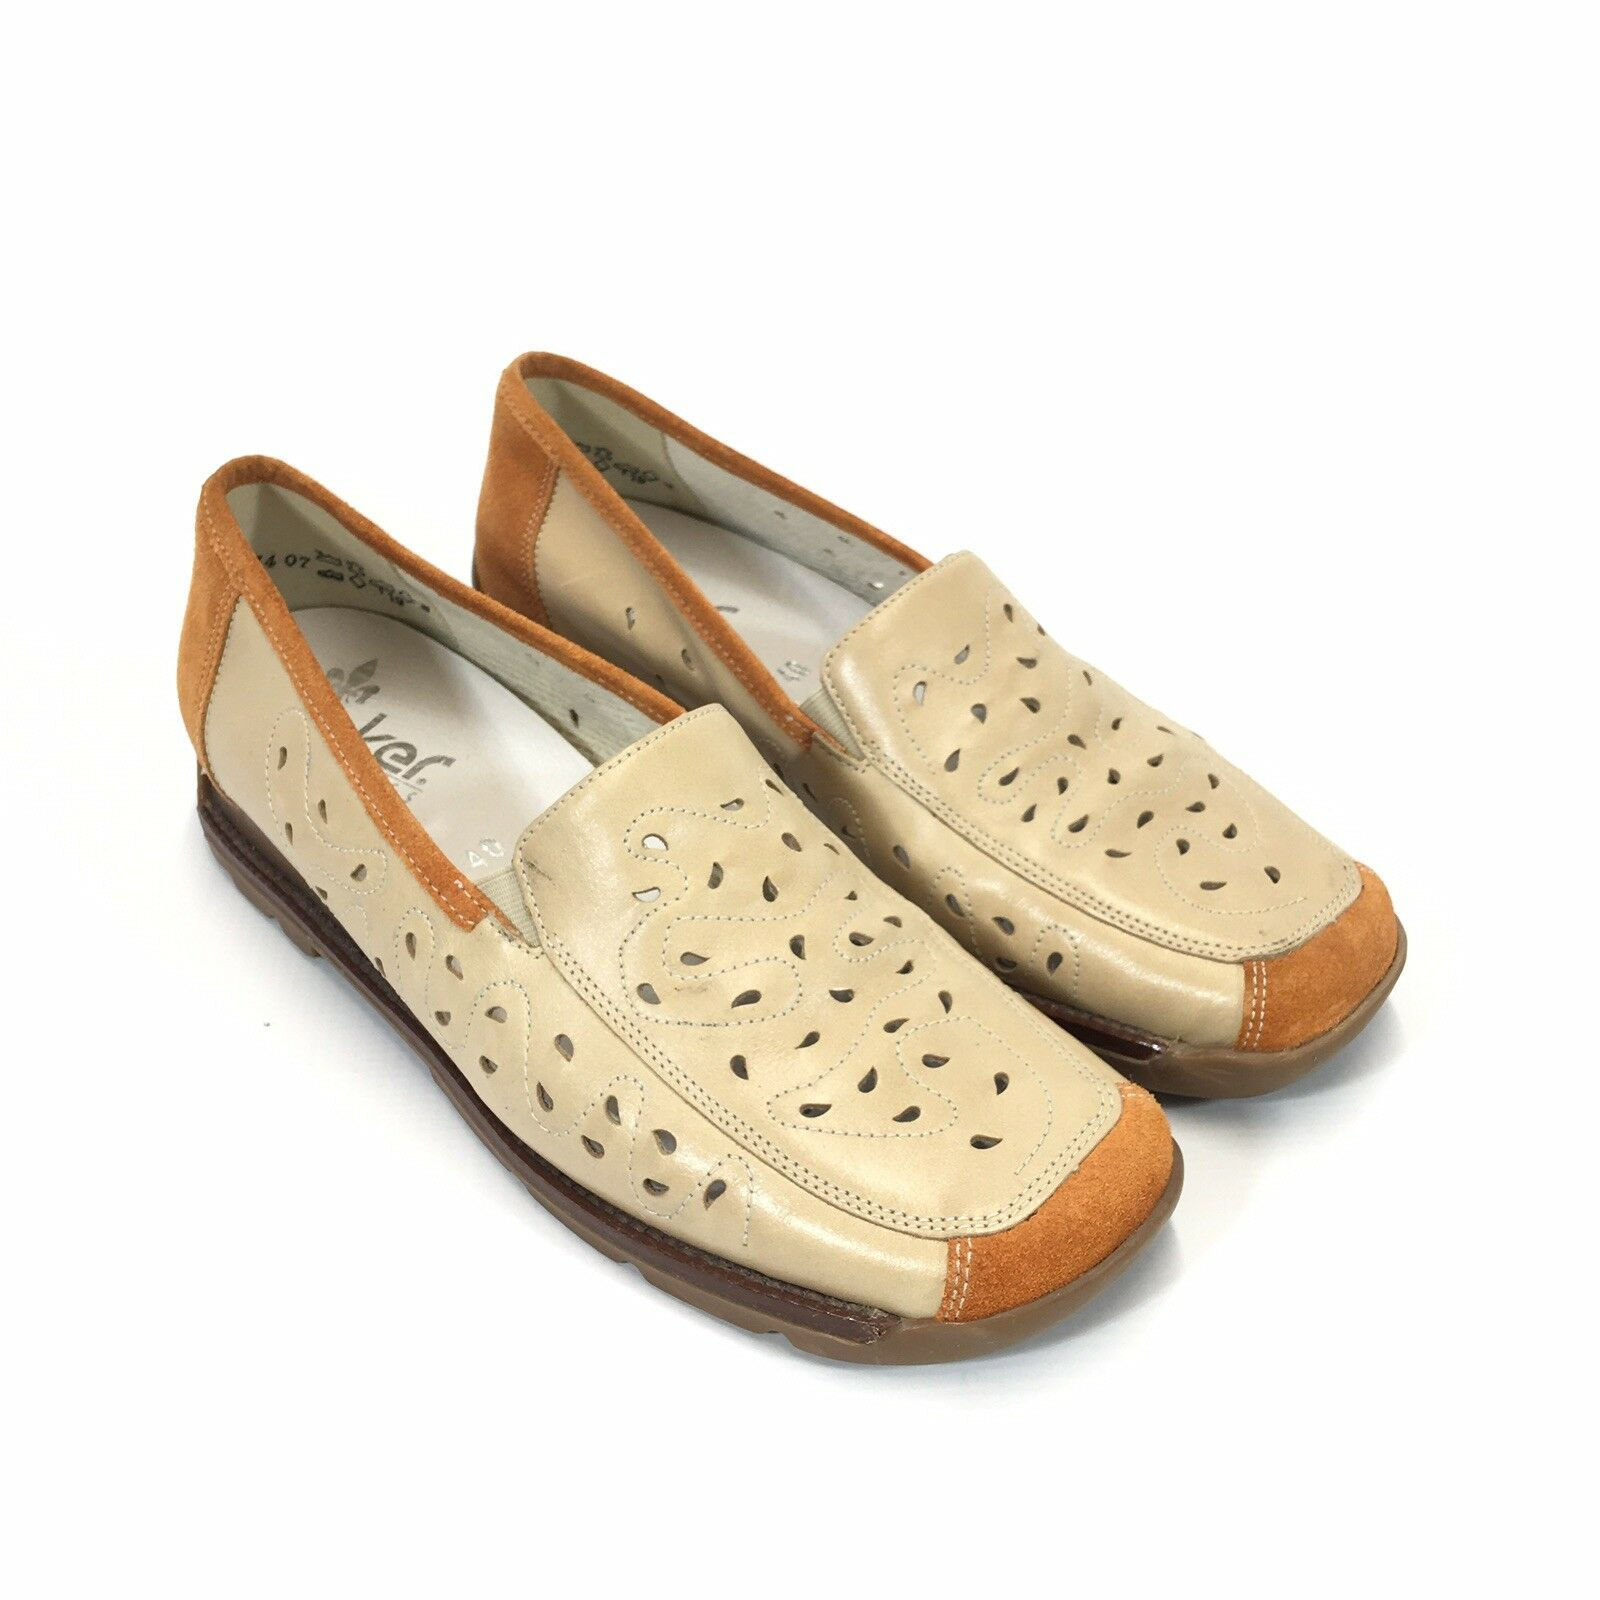 Rieker Perforated Leather Loafer Womans 40 8.5 Tan Brown Slip On Antistress